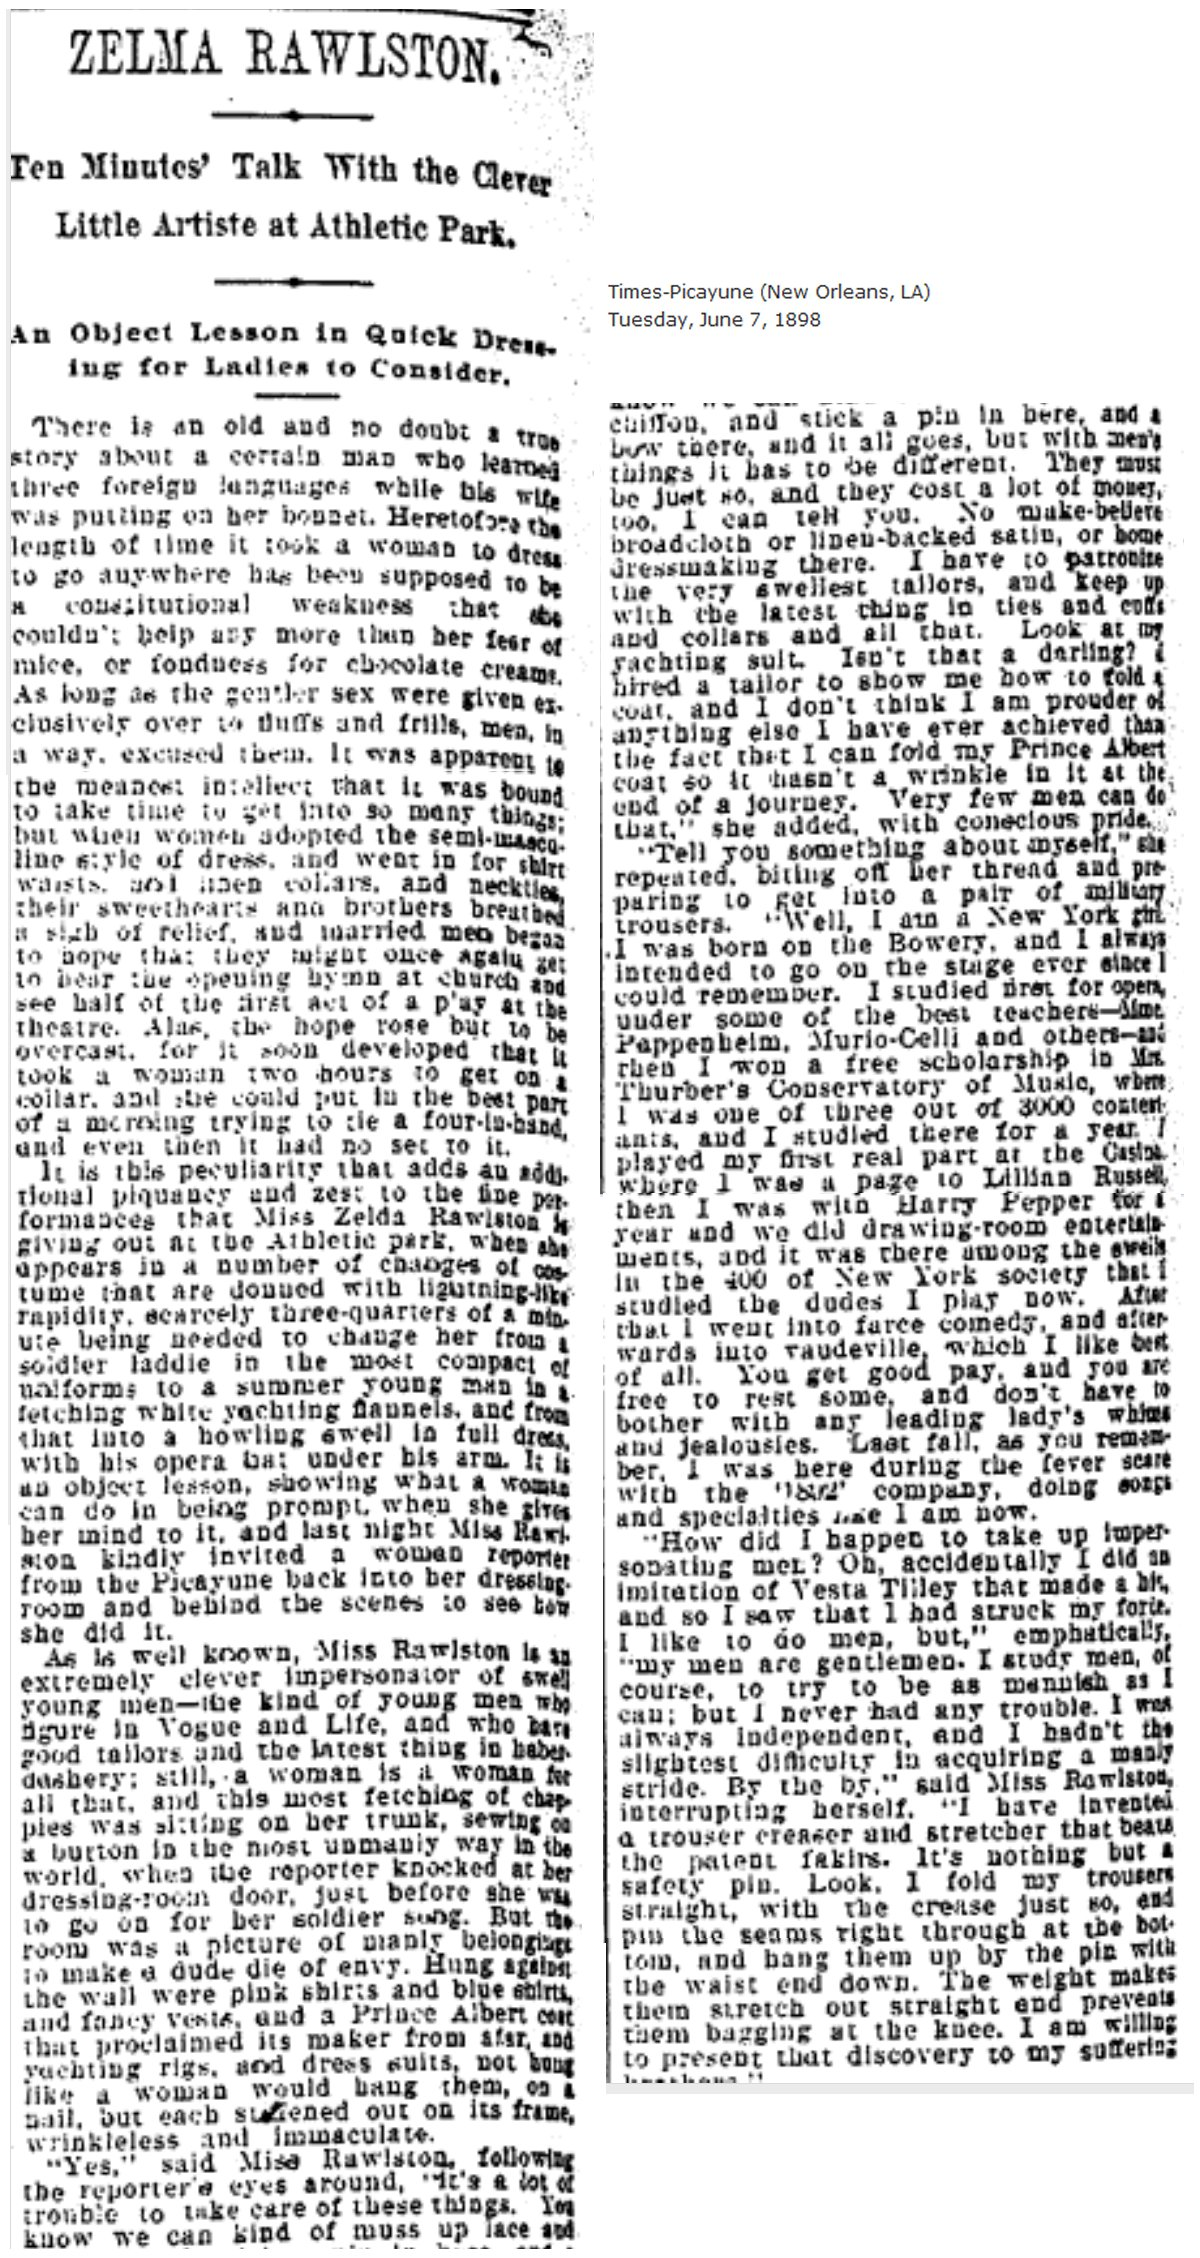 Zelma Rawlston Review, 1898